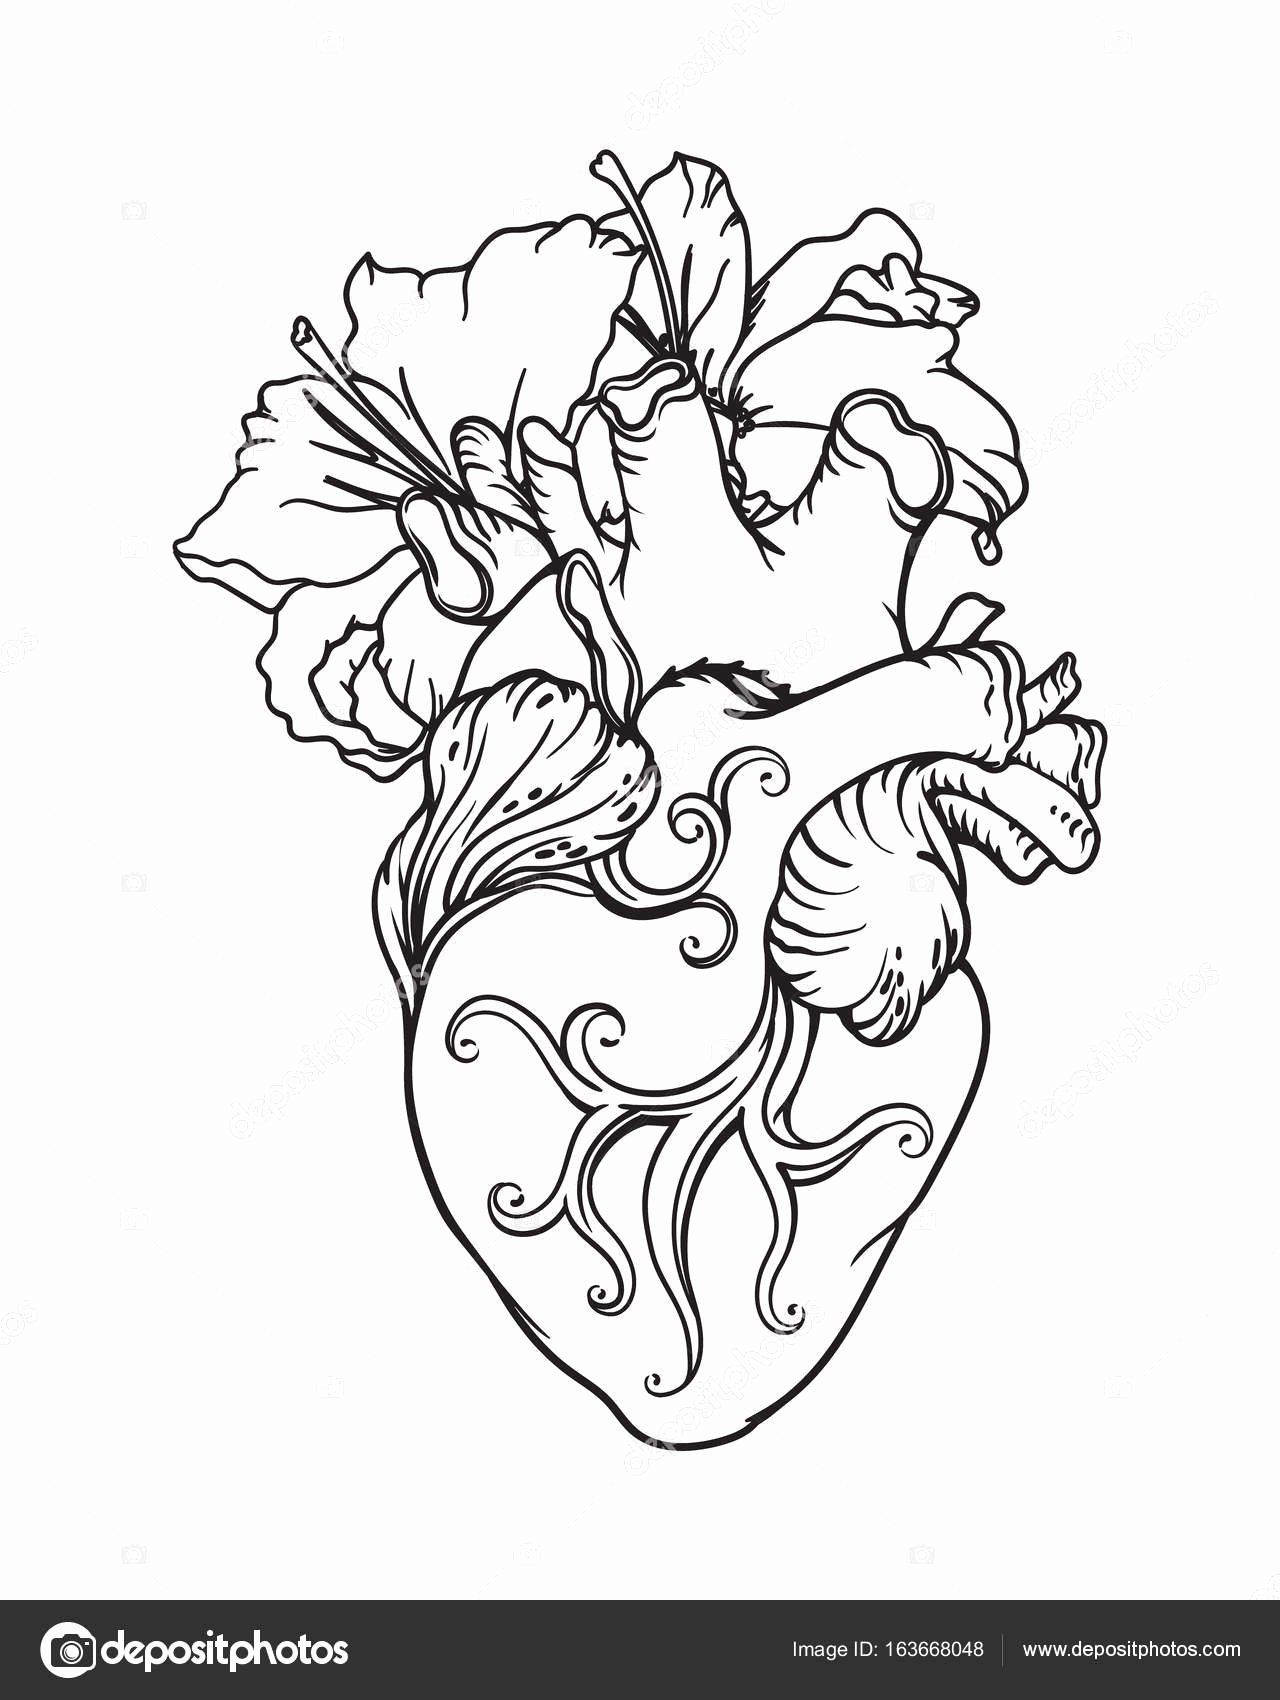 Anatomical Heart Coloring Pages Inspirational Stylized Anatomical Human Heart Drawing Heart Wi Heart Coloring Pages Anatomical Heart Tattoo Human Heart Drawing